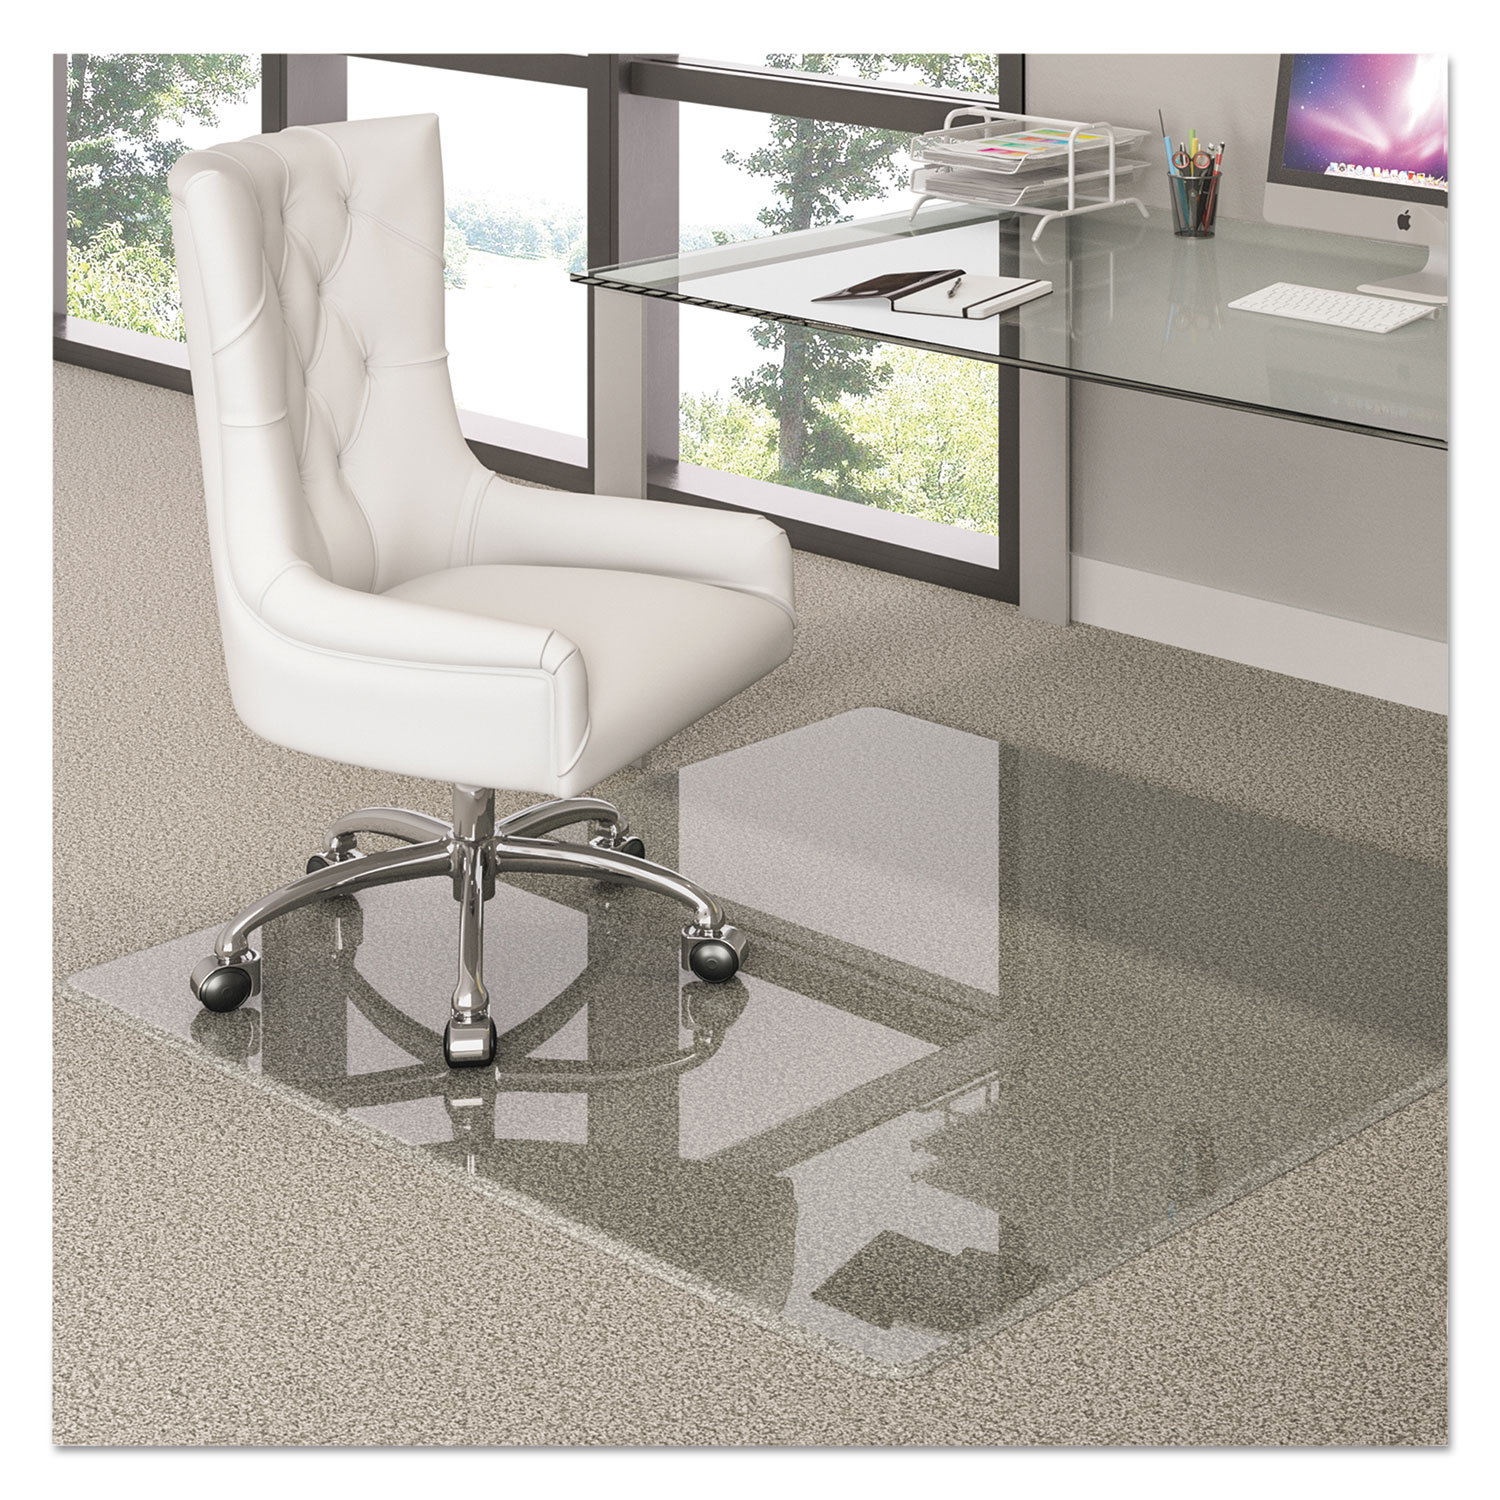 High Chair Floor Mat Premium Glass All Day Use Chair Mat All Floor Types By